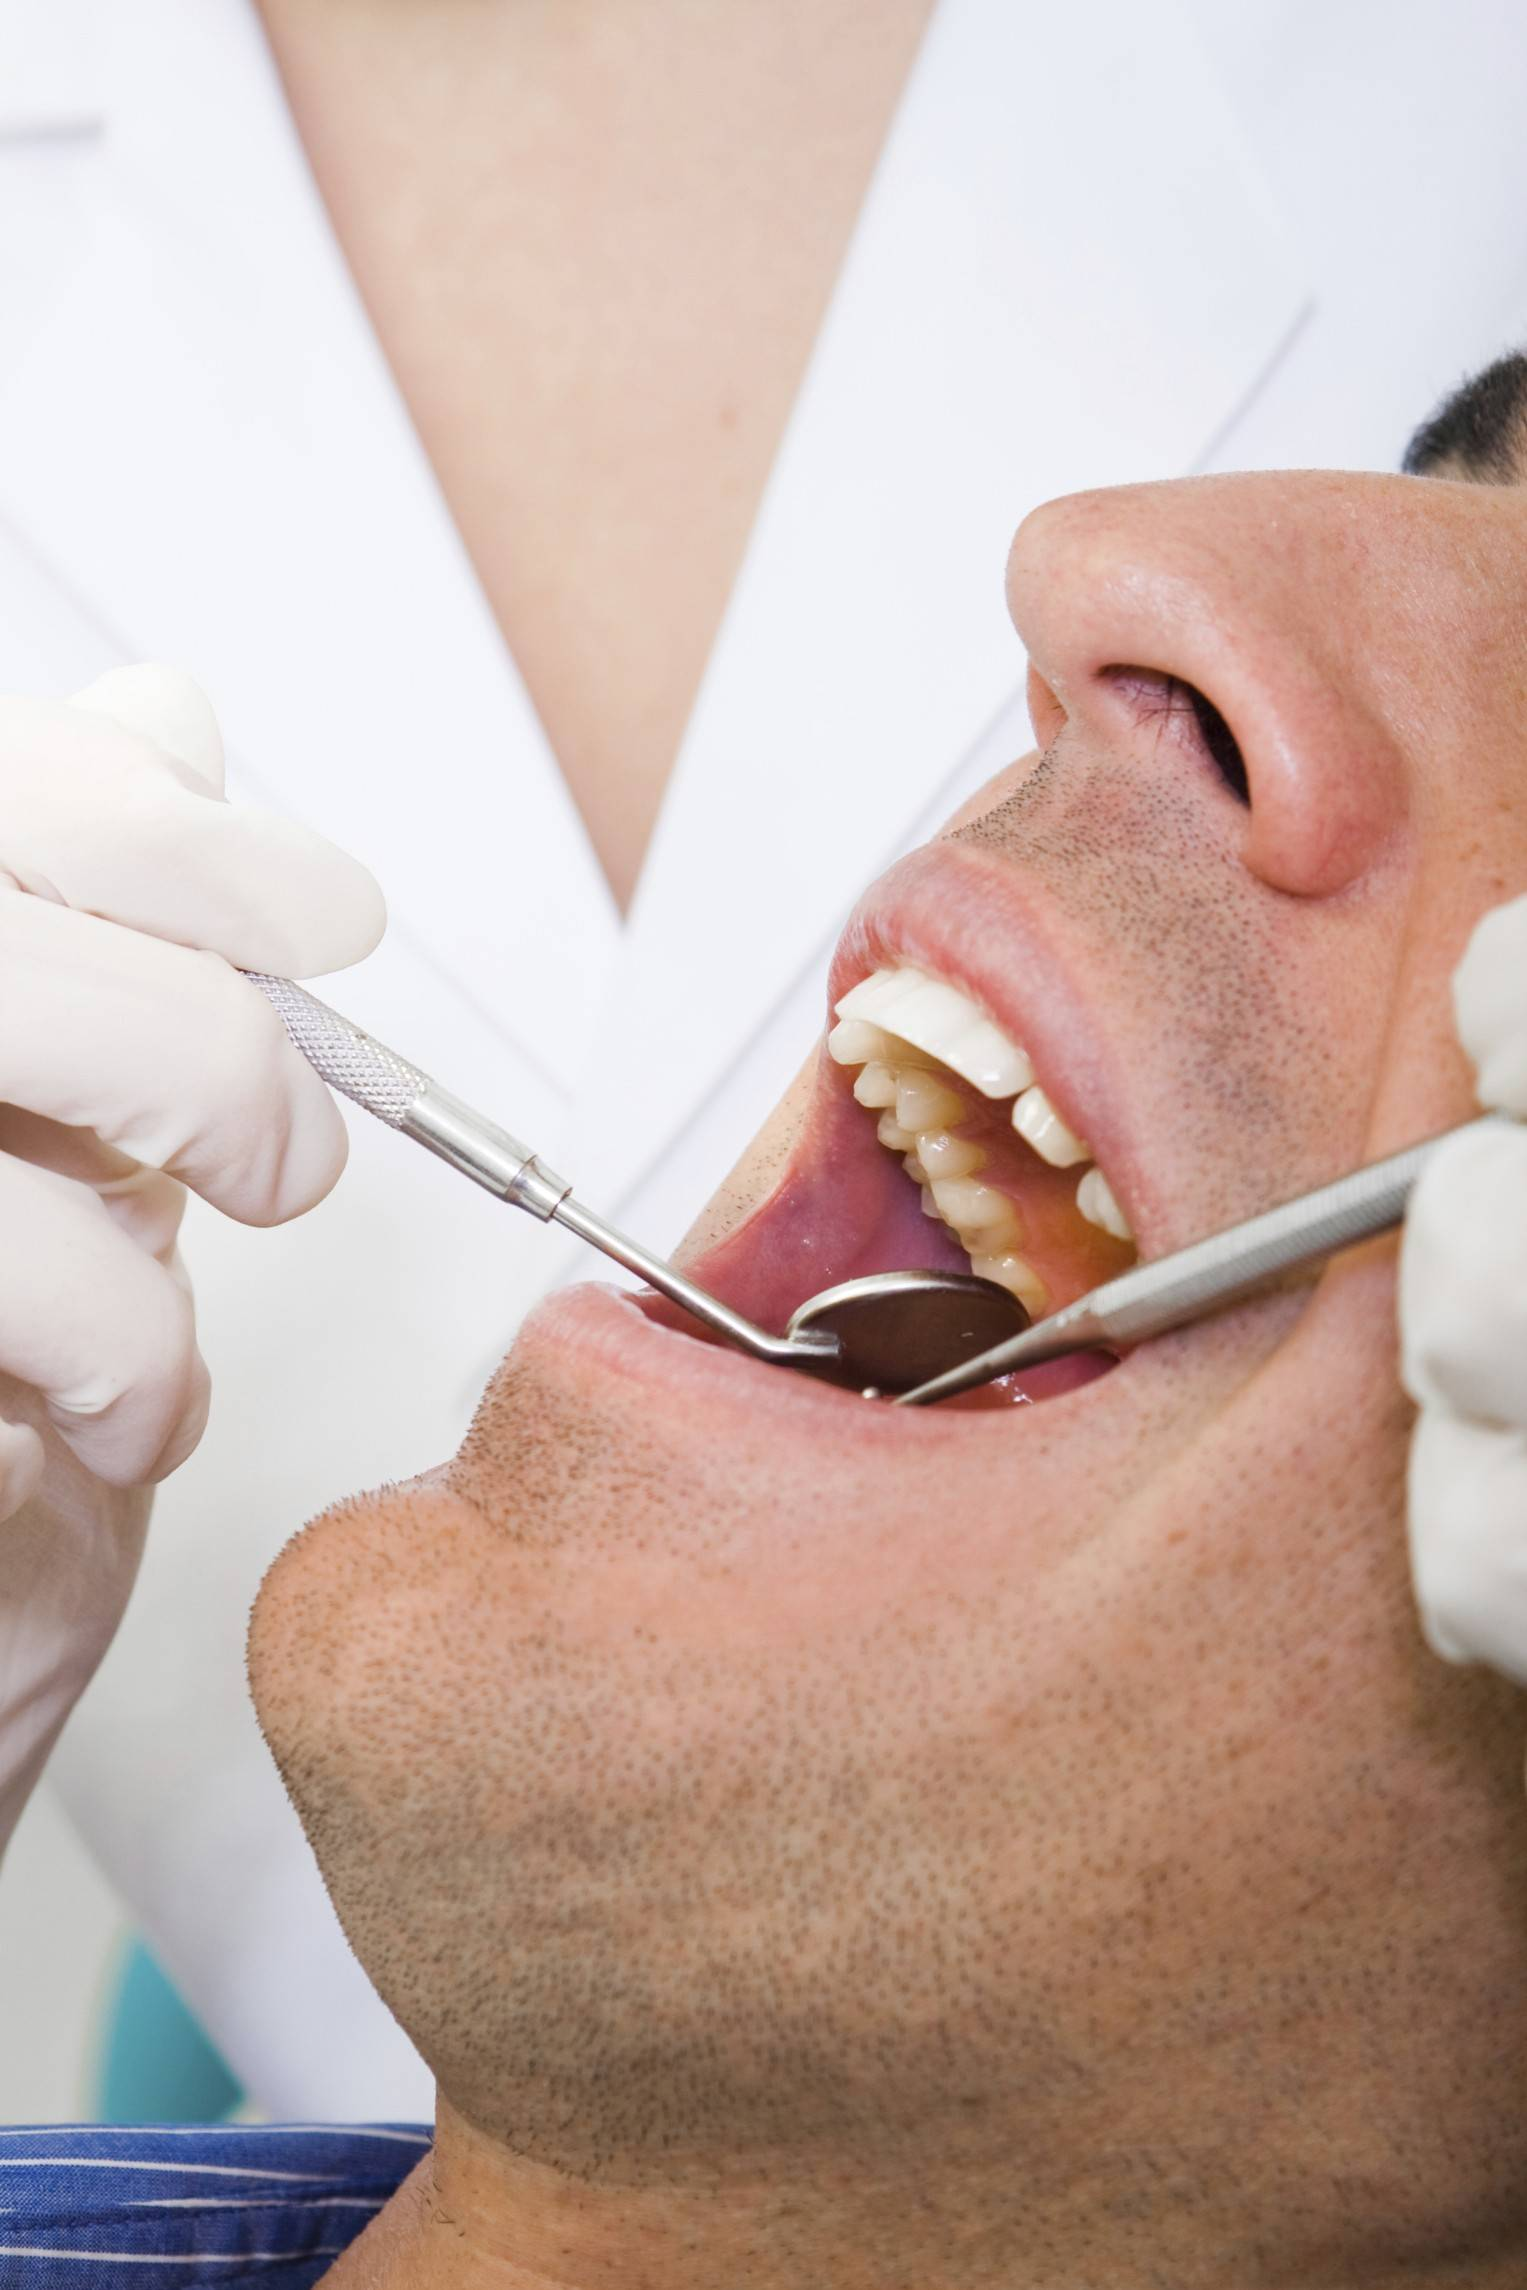 Will new technology make fillings for cavities a thing of the past?